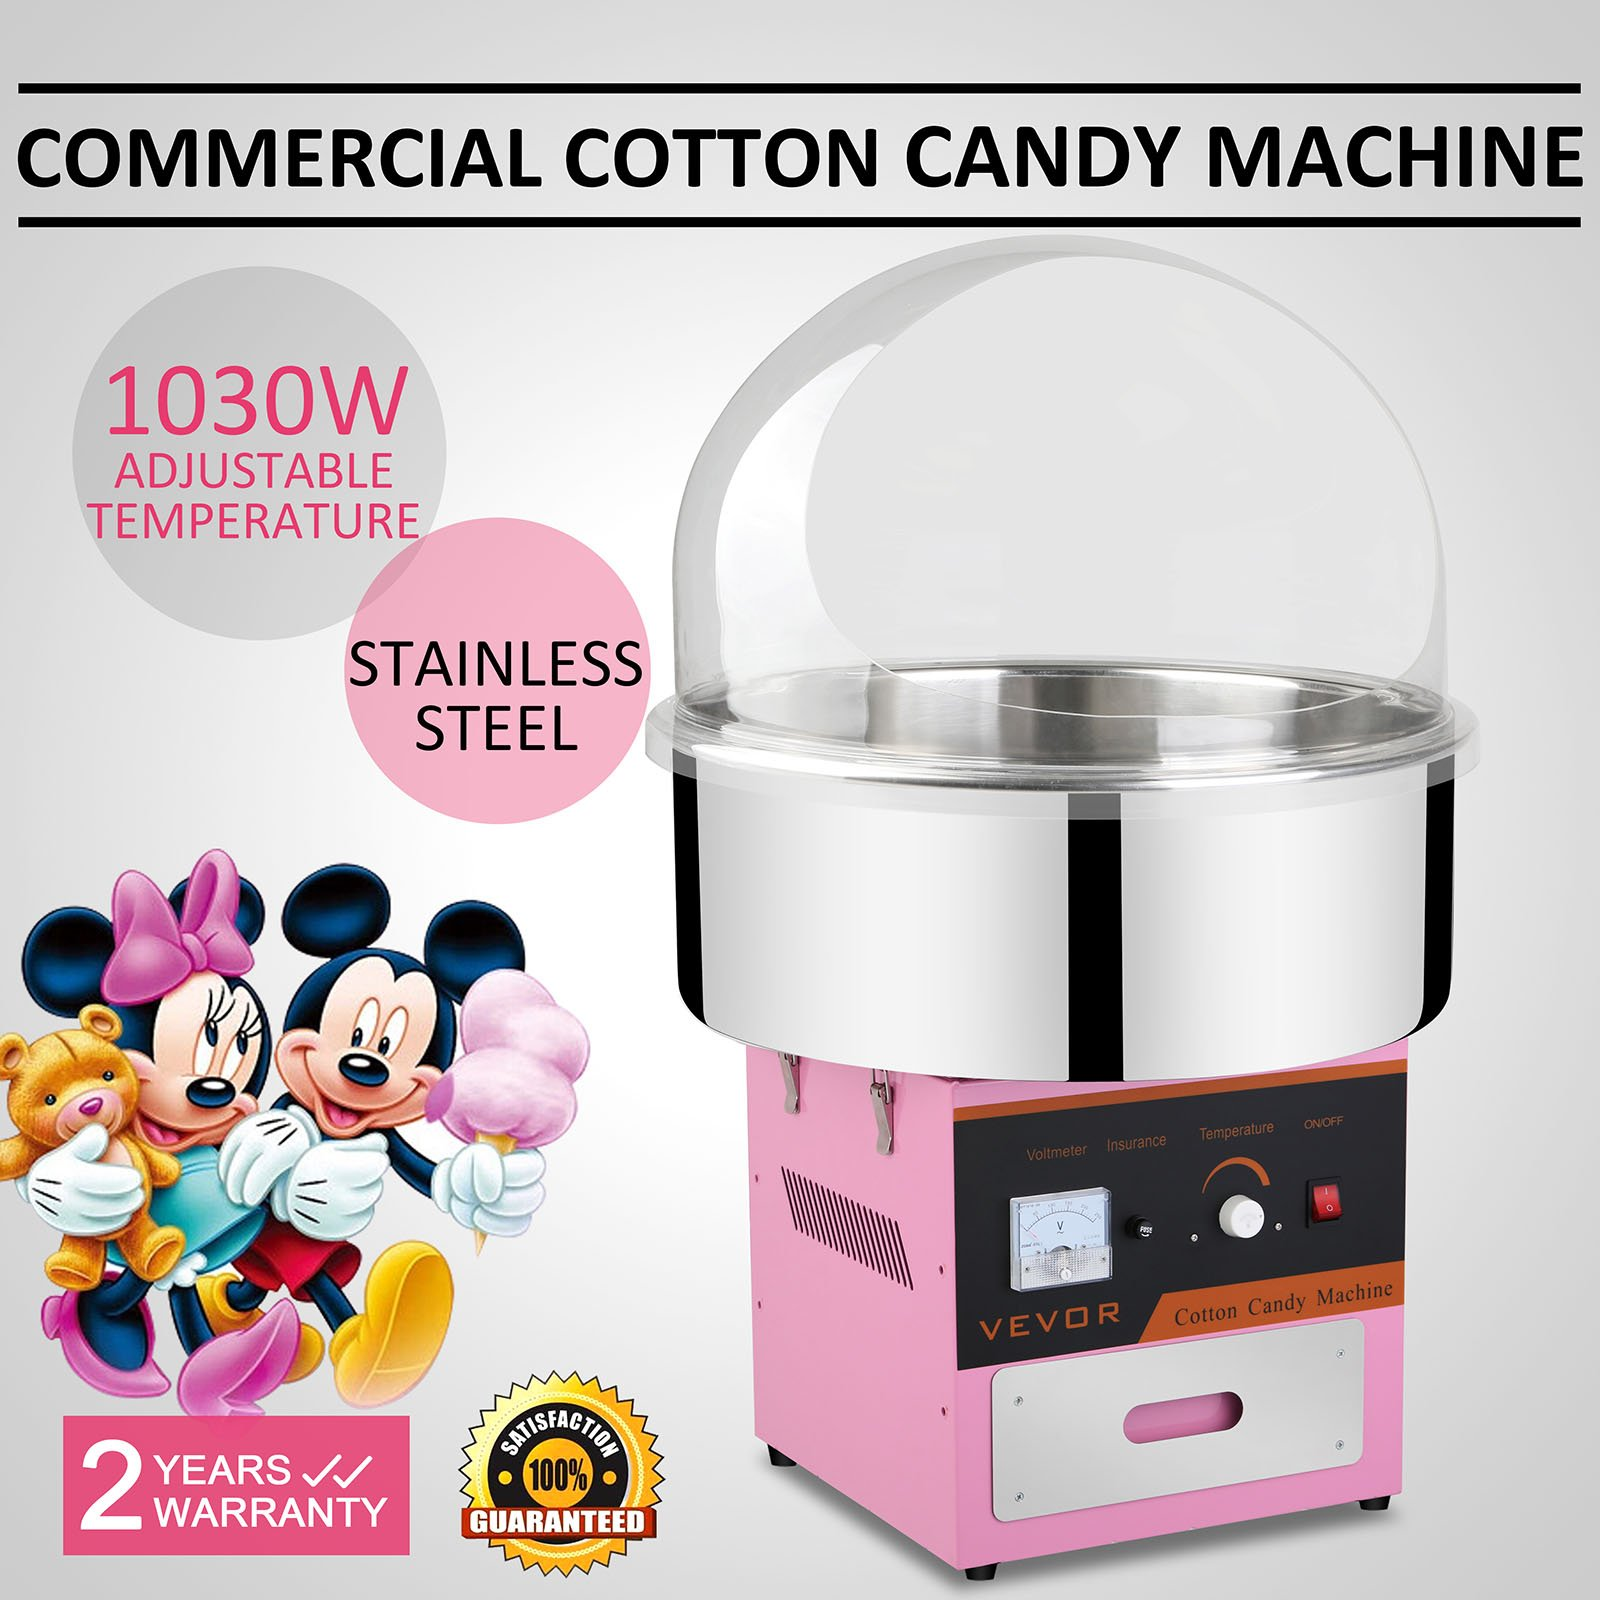 Vevor Cotton Candy Machine Commercial Cotton Candy Machine Candy Floss Maker 1030W Electric Cotton Candy Maker Stainless Steel Pink (Cotton Candy Machine with Cover)